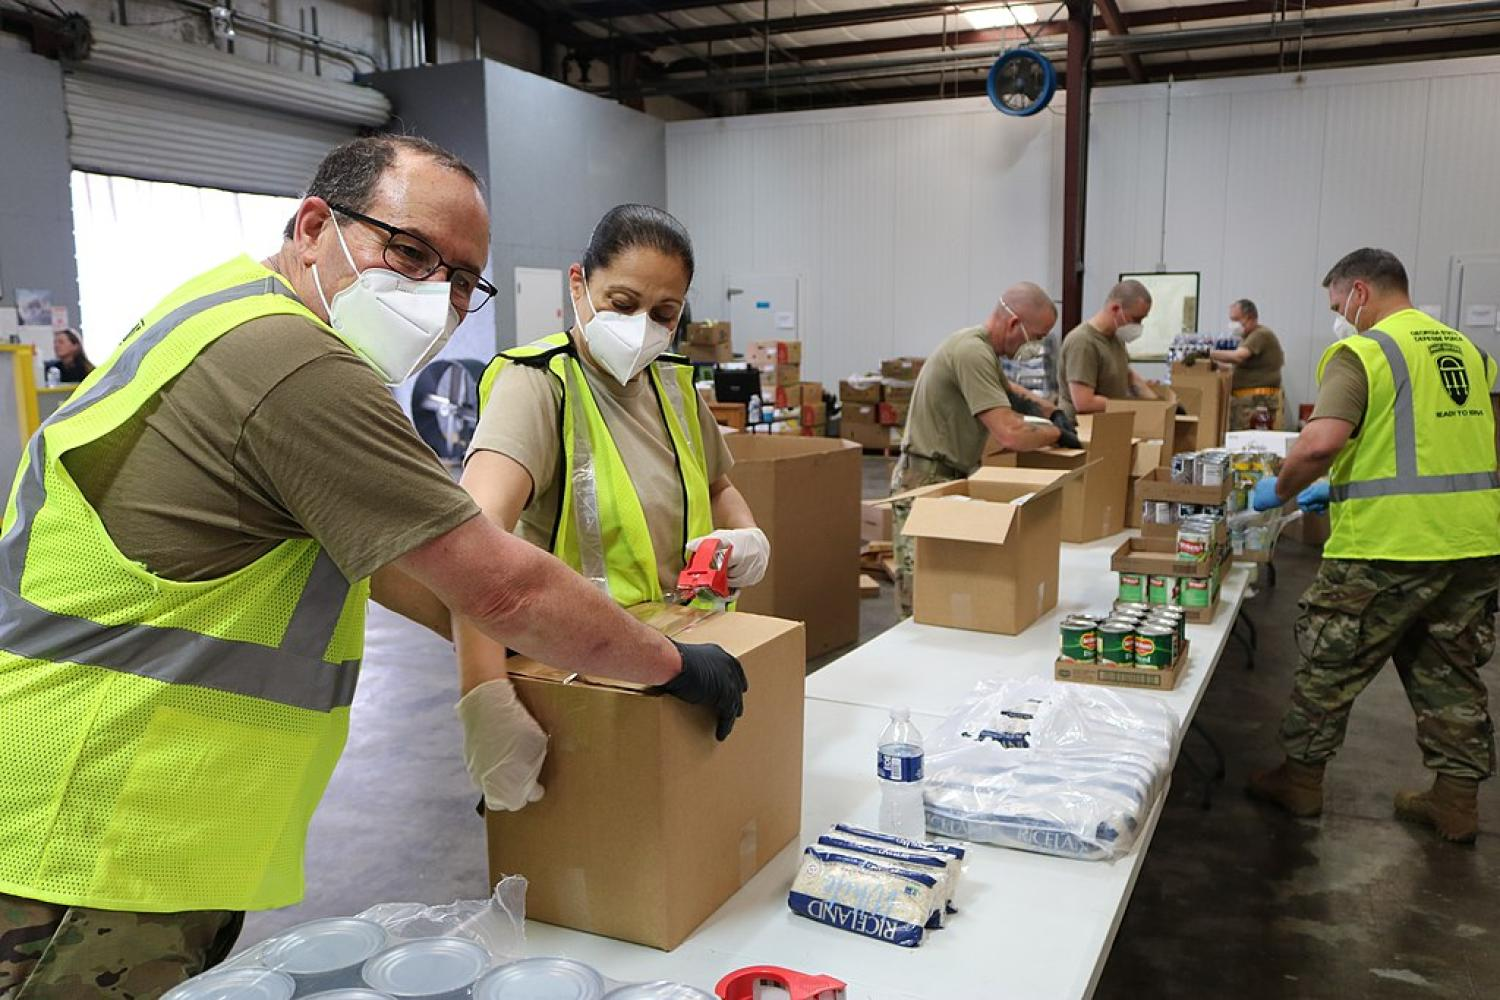 People with masks on organizing food at a food bank.